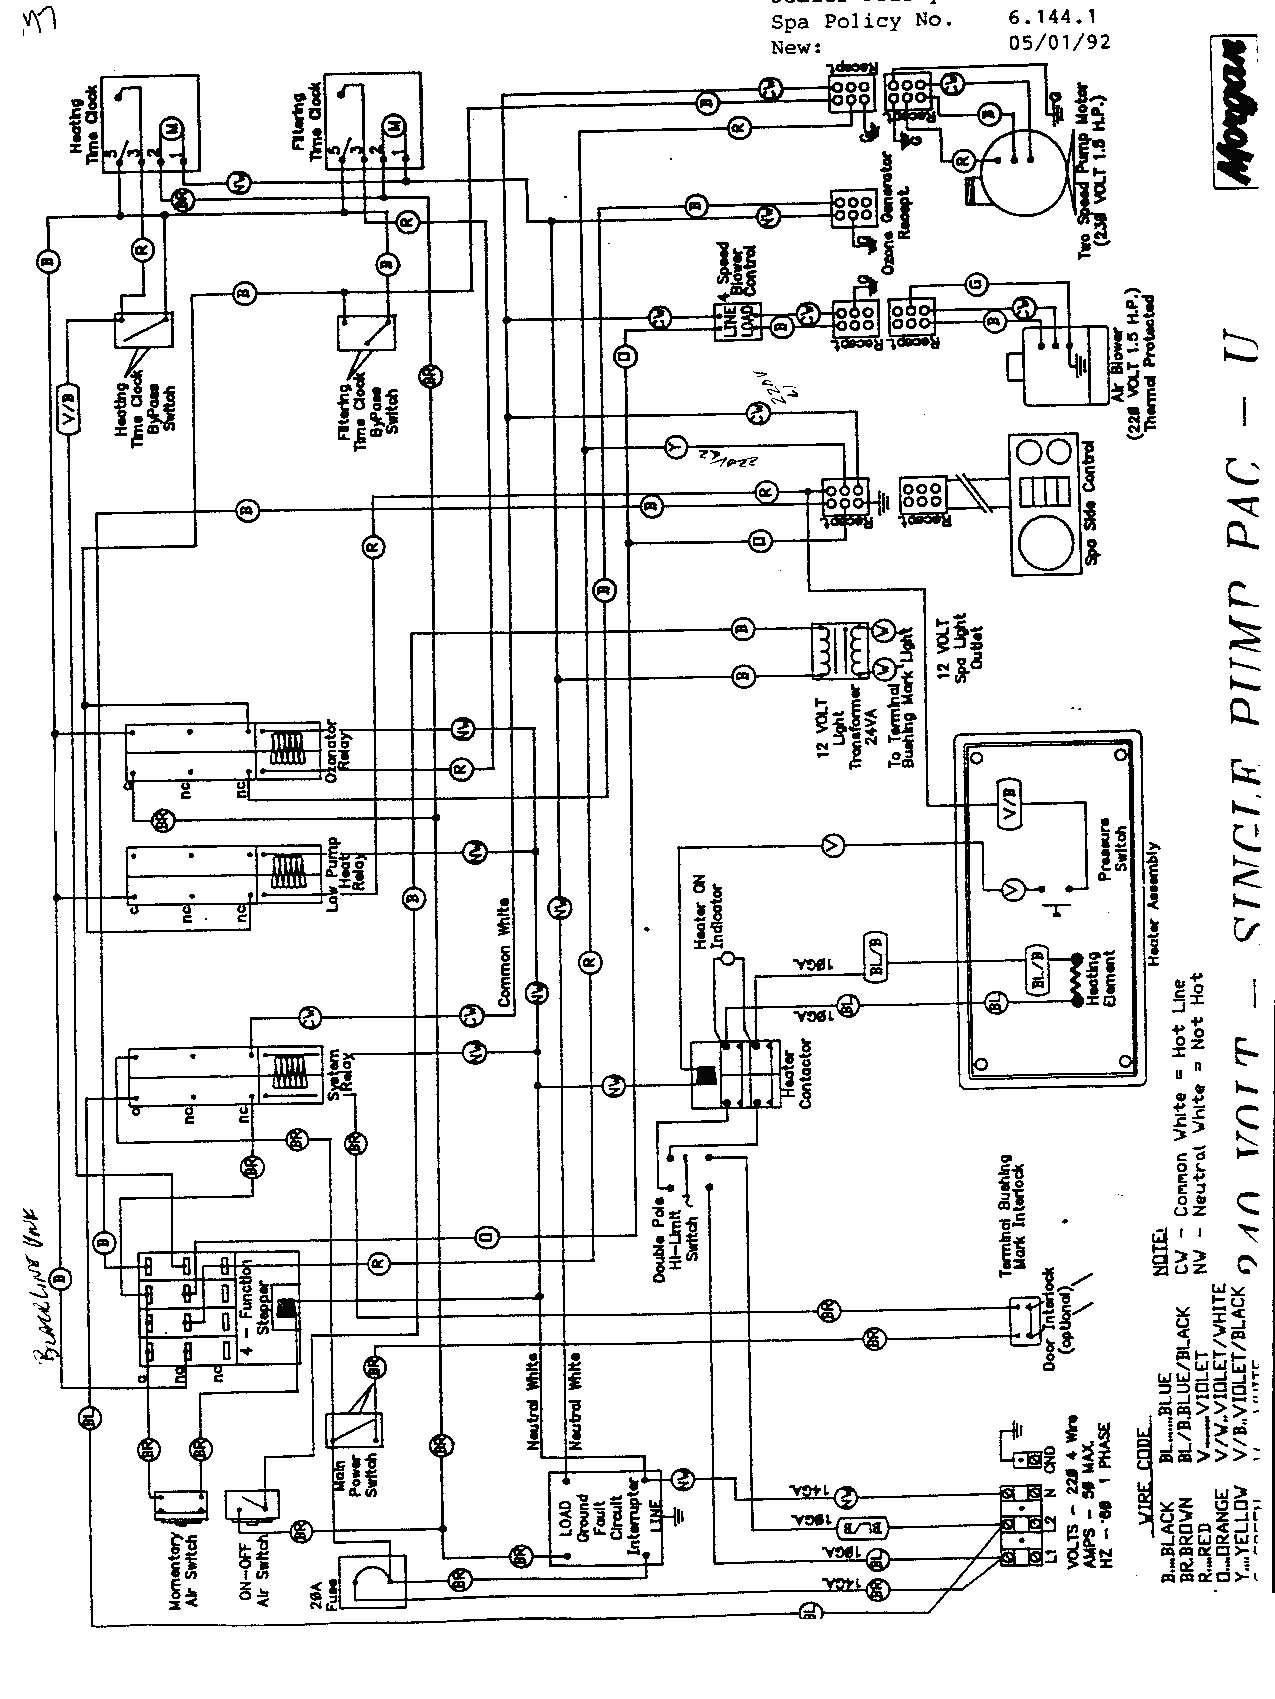 hight resolution of hot tub wiring diagram hot tub wiring diagram lovely 220v hot tub wiring diagram and